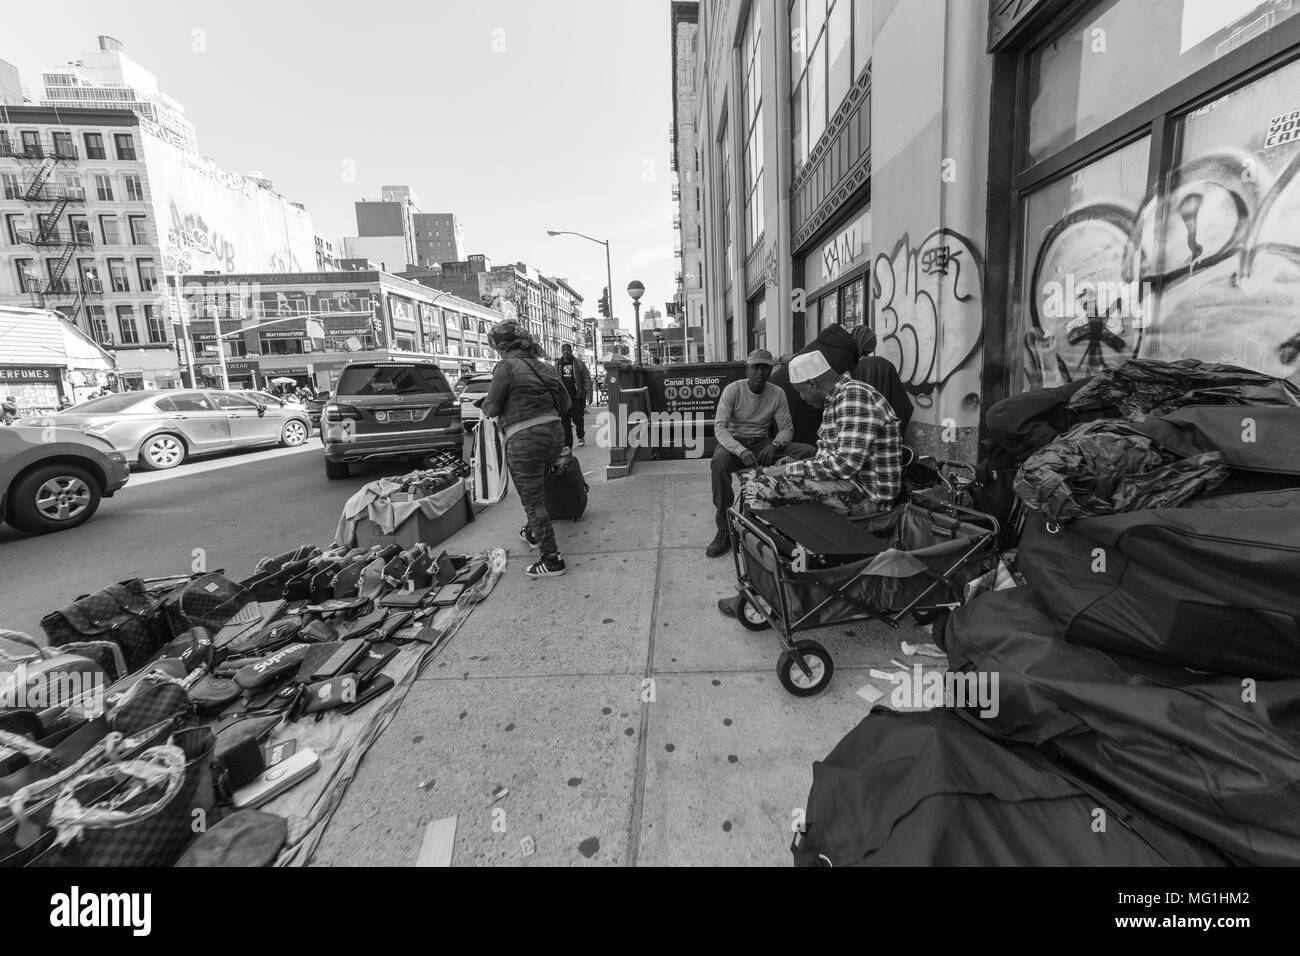 Street shot of people selling purses and watches, NYC Manhattan - Stock Image